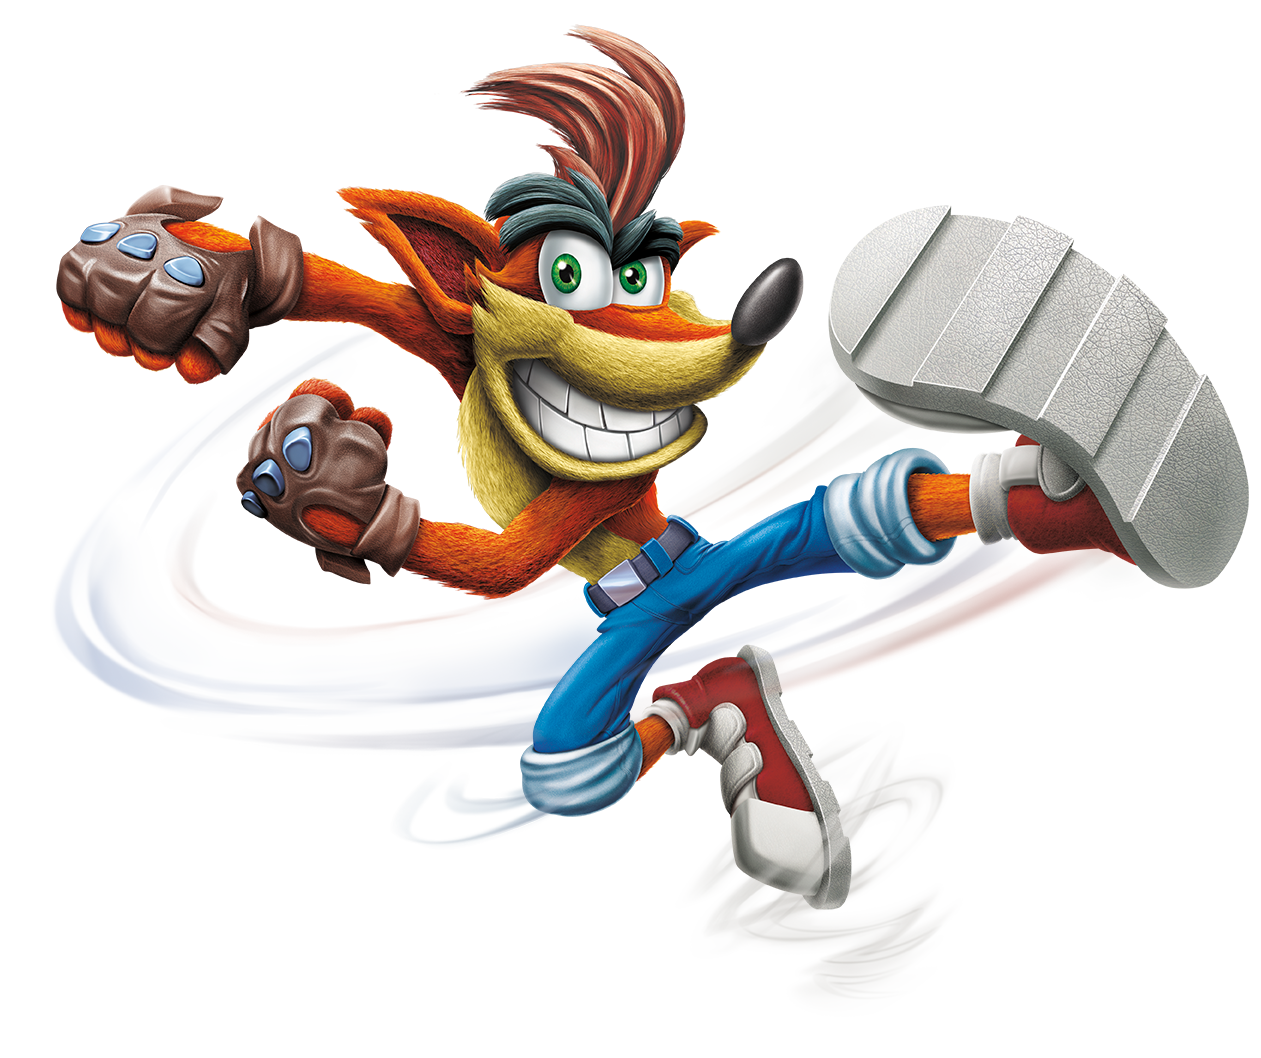 Happy 20th Anniversary to Our Favorite Marsupial, Crash Bandicoot!